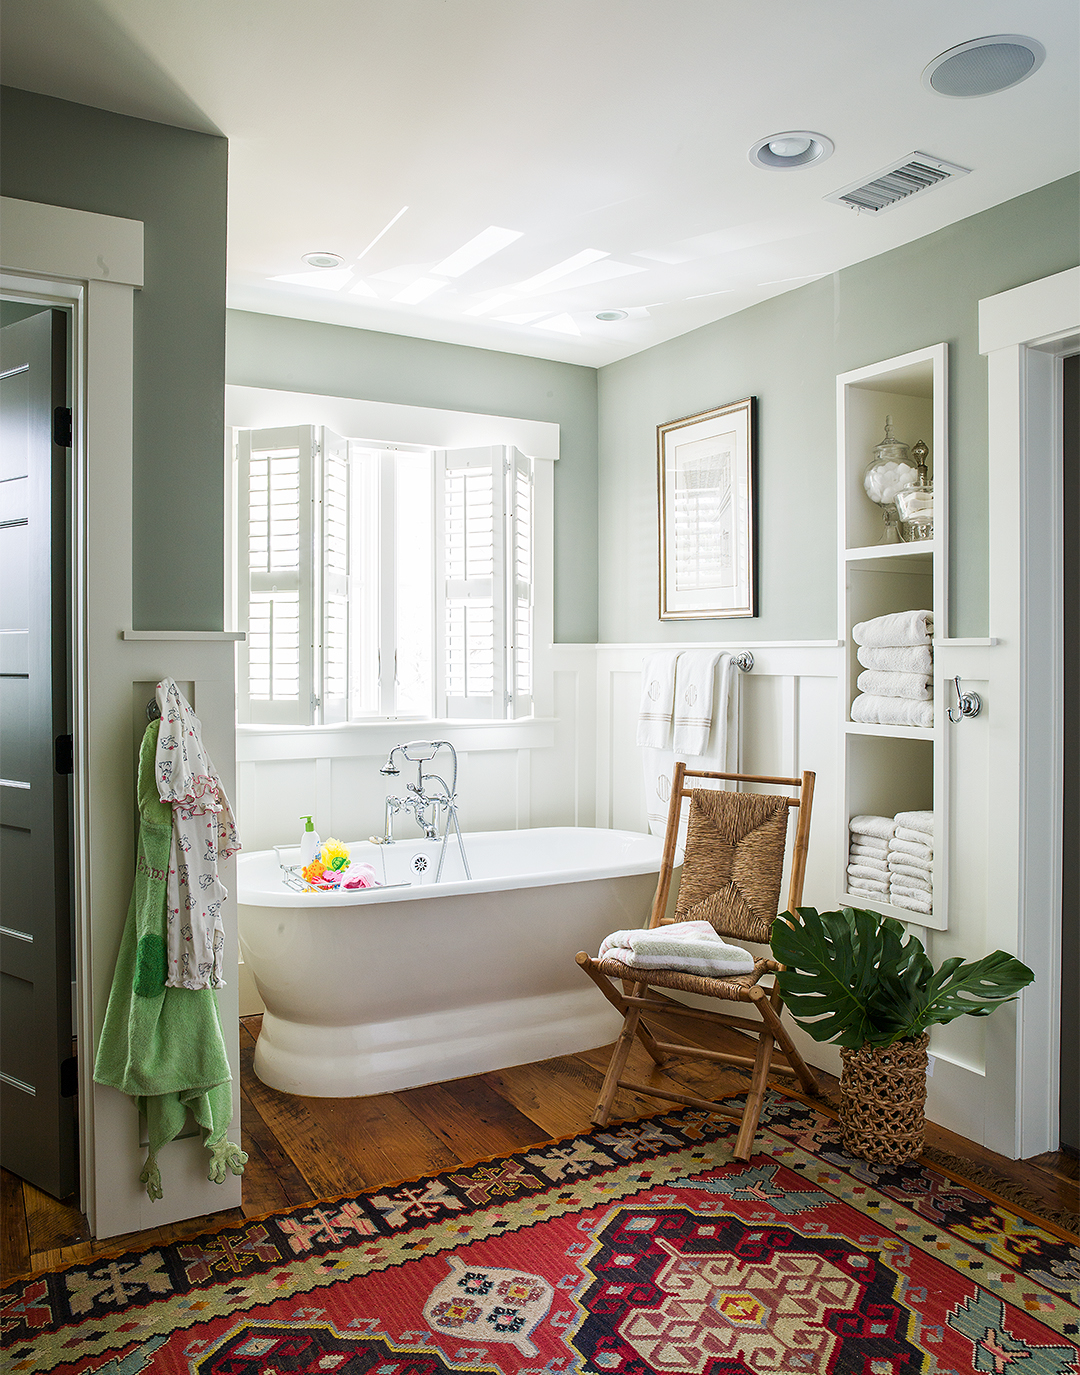 green and white spa bathroom with tub and white towels rug and chair